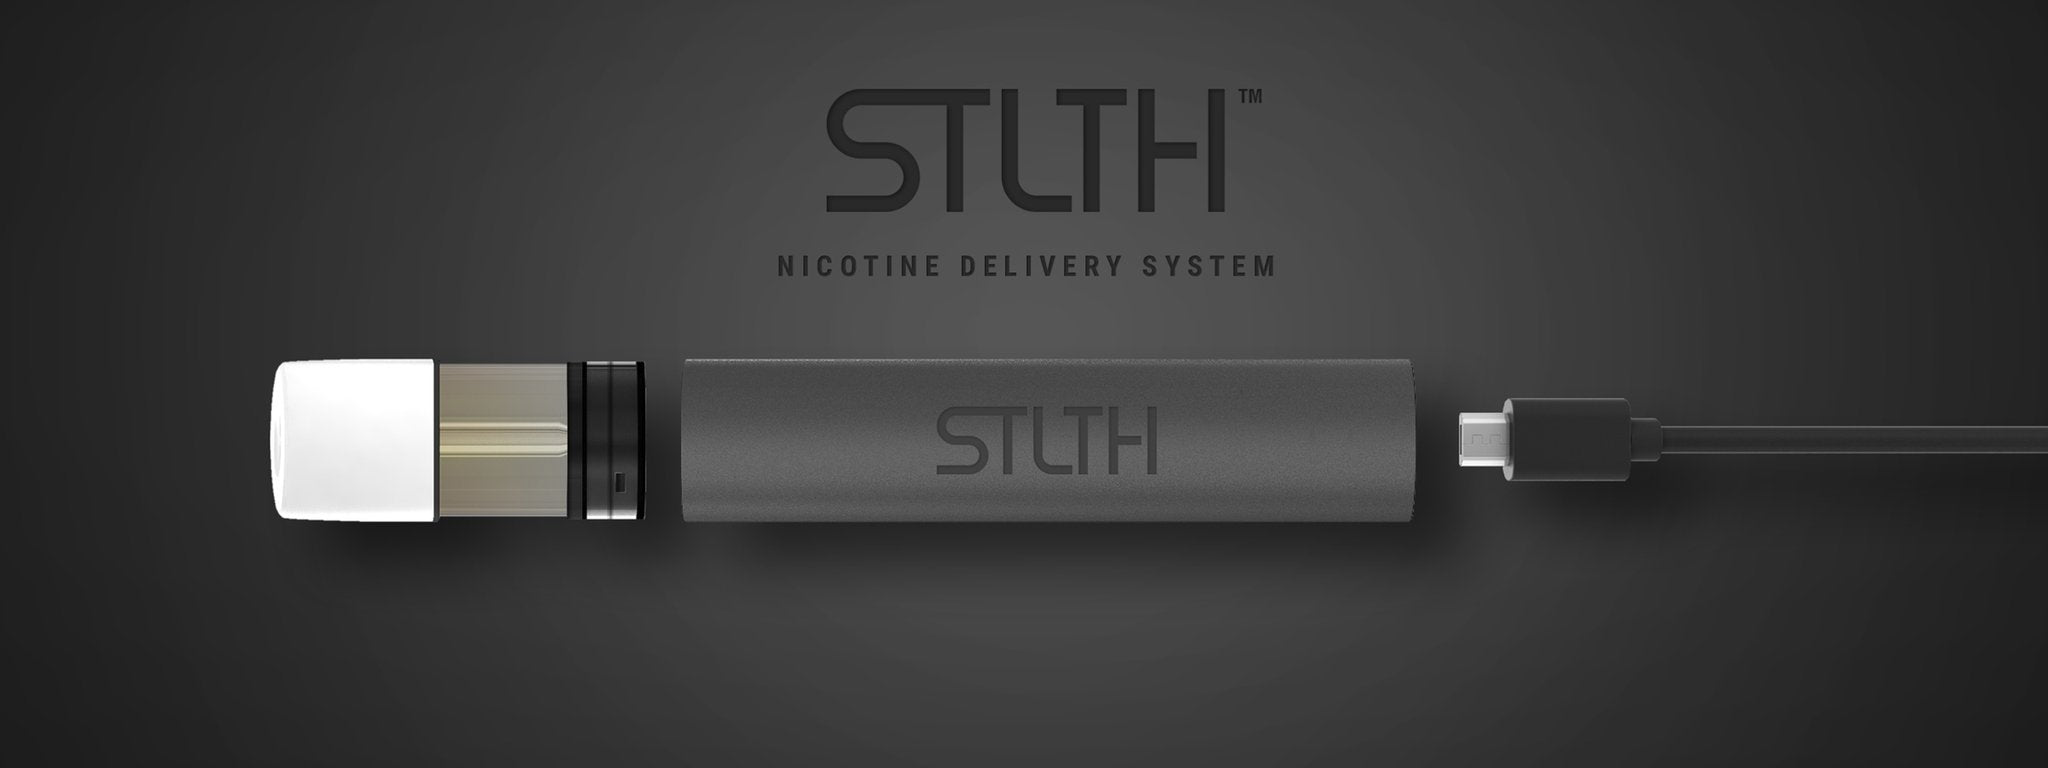 STLTH VAPE USA – STLTH Vape